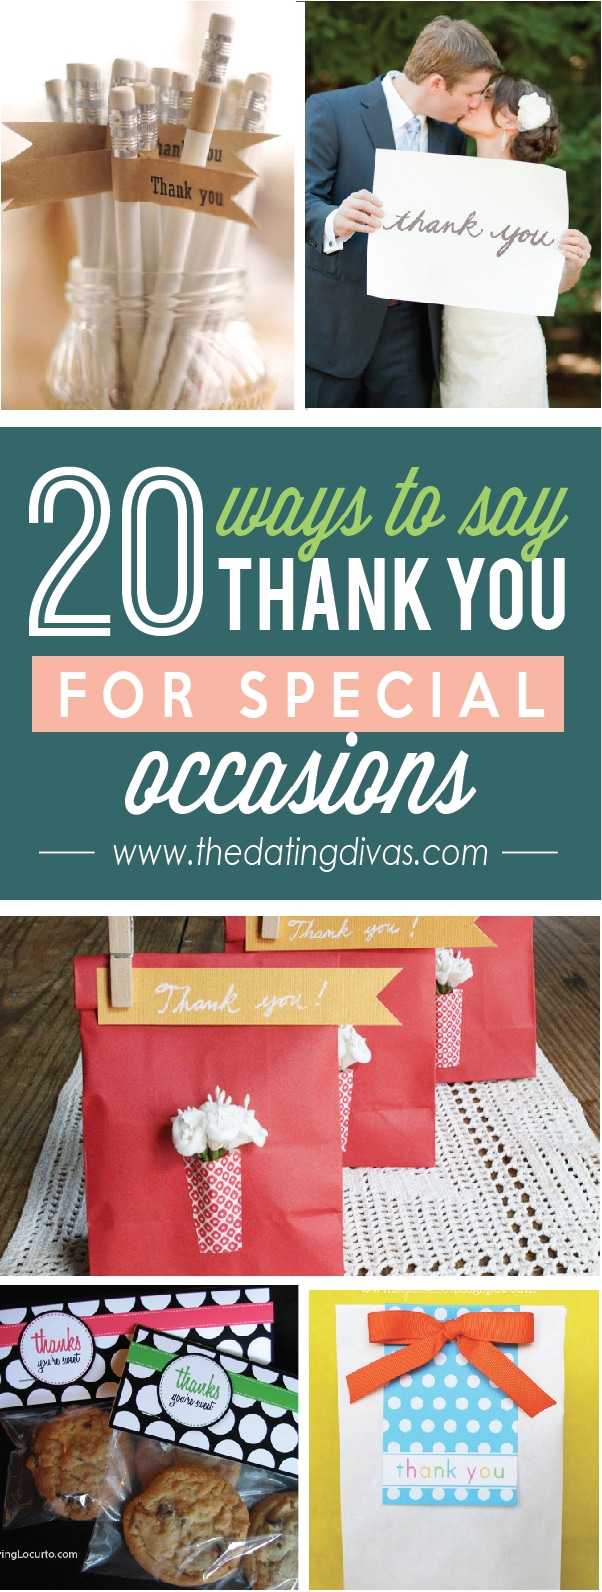 20 ways to say Thank You for Special Occasion